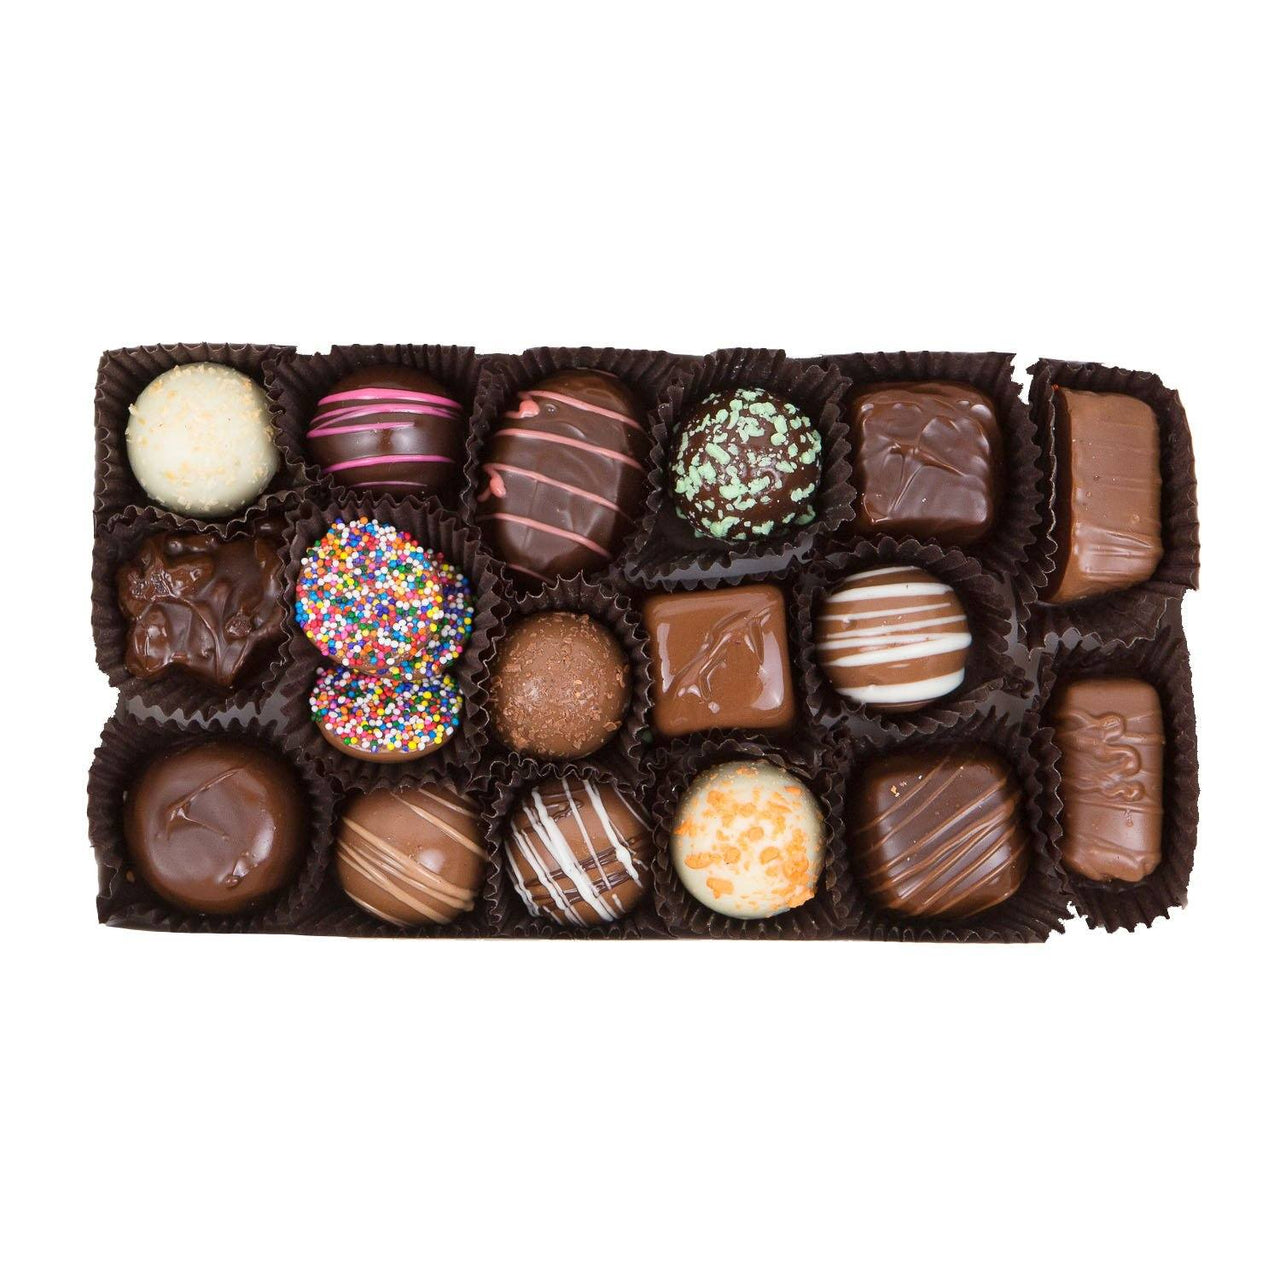 Gifts for Him - Assorted Chocolate Gift Box - Jackie's Chocolate (1487133736995)